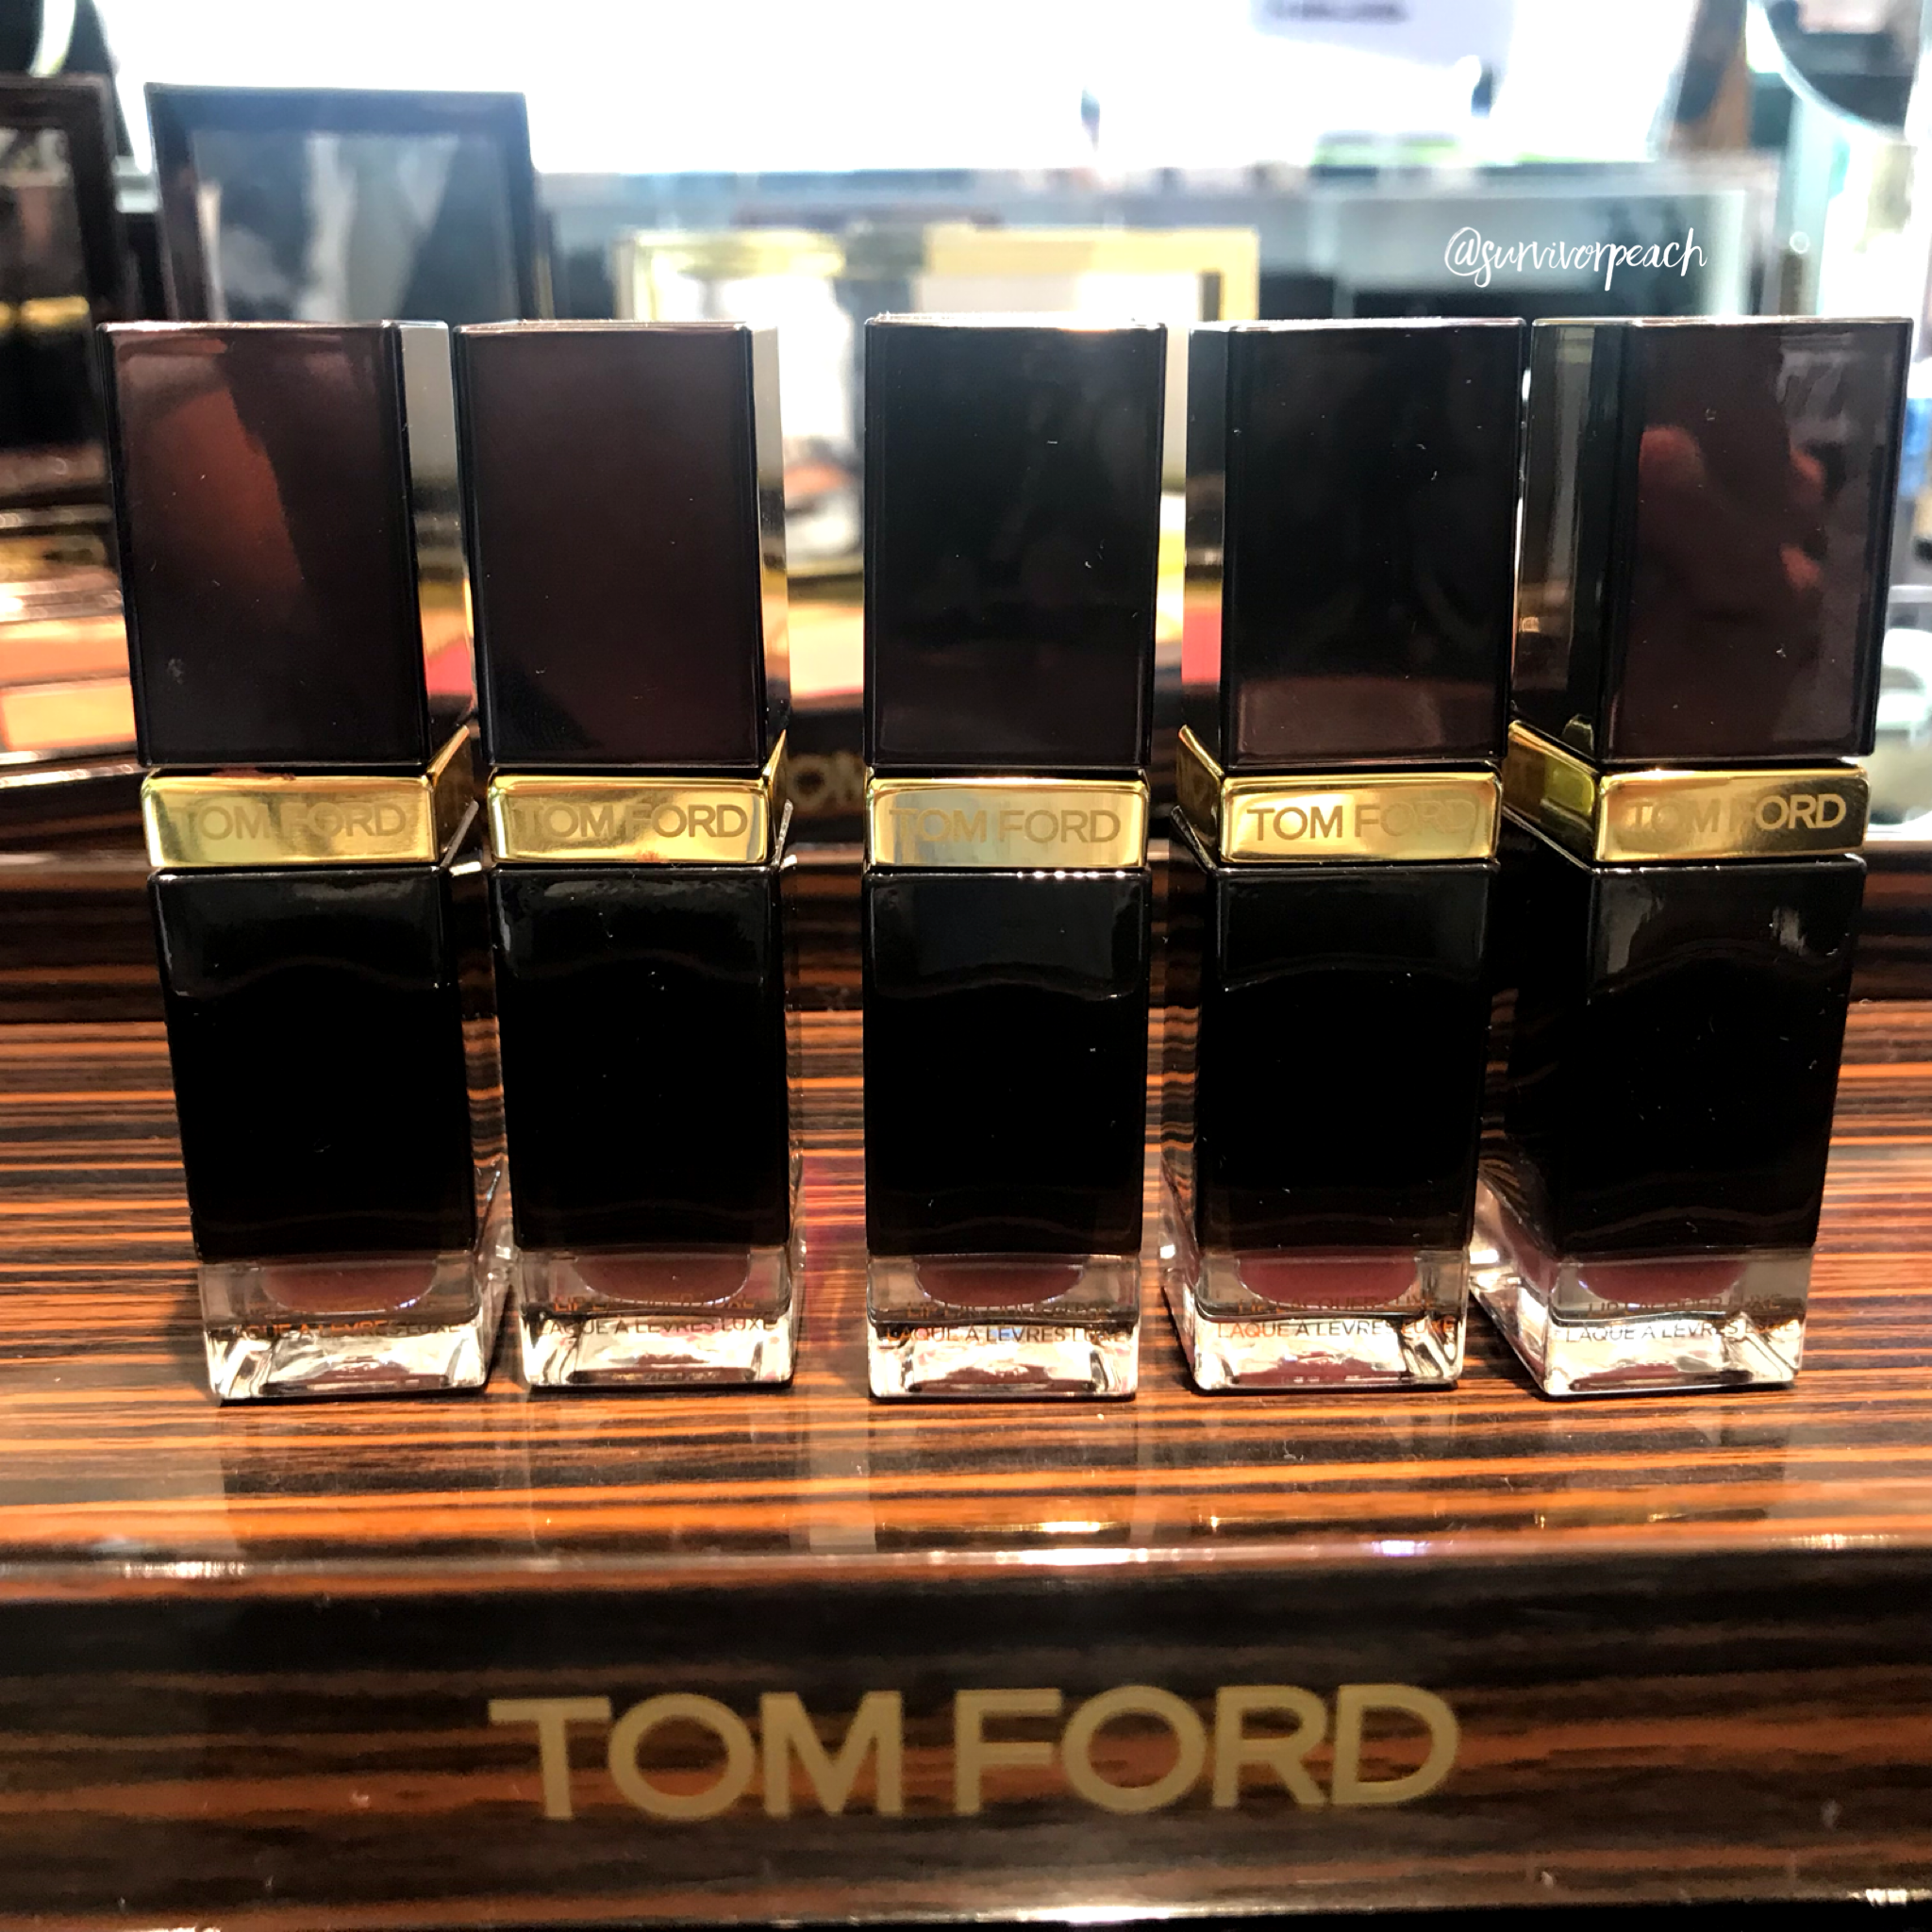 Tomford Lip Lacquer Luxe Matte in shades Darling, Quiver, Lark, Insouciant, and Pussycat